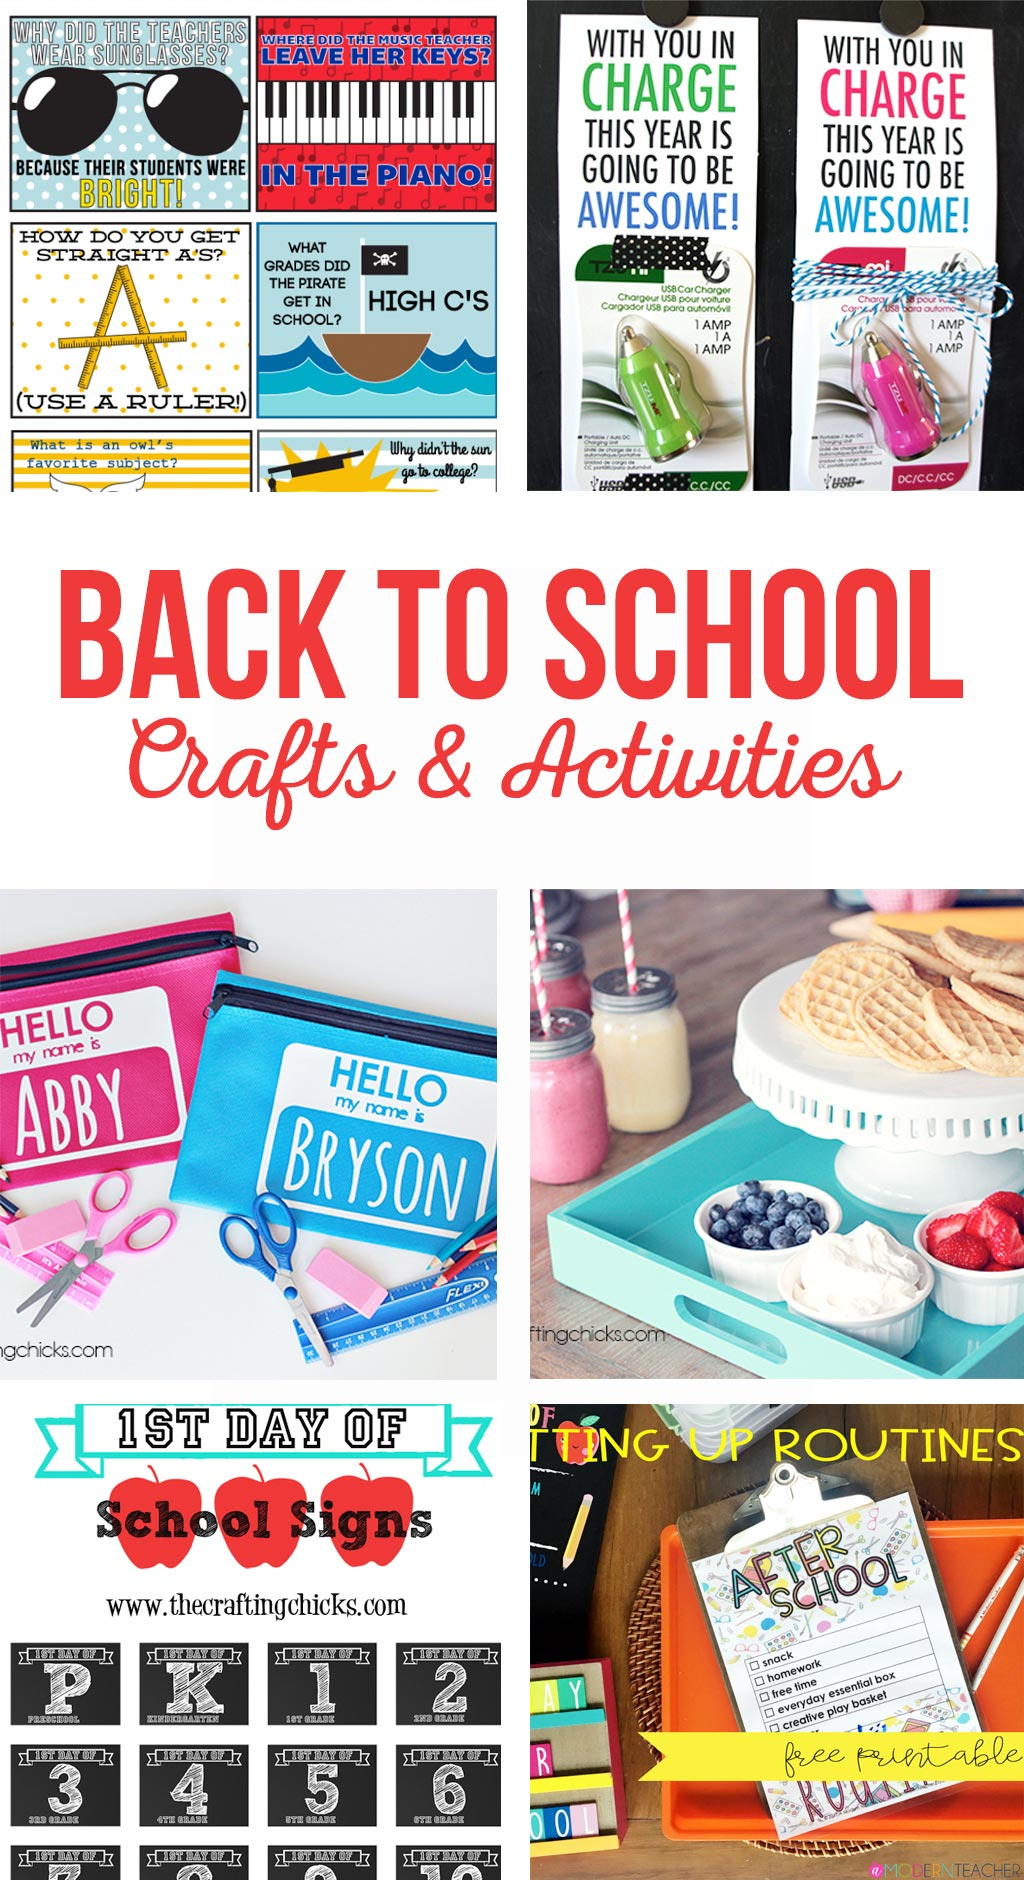 Back to School Crafts and Activities | School is starting... start a new back to school tradition with your family this year. Printables, crafts, activities